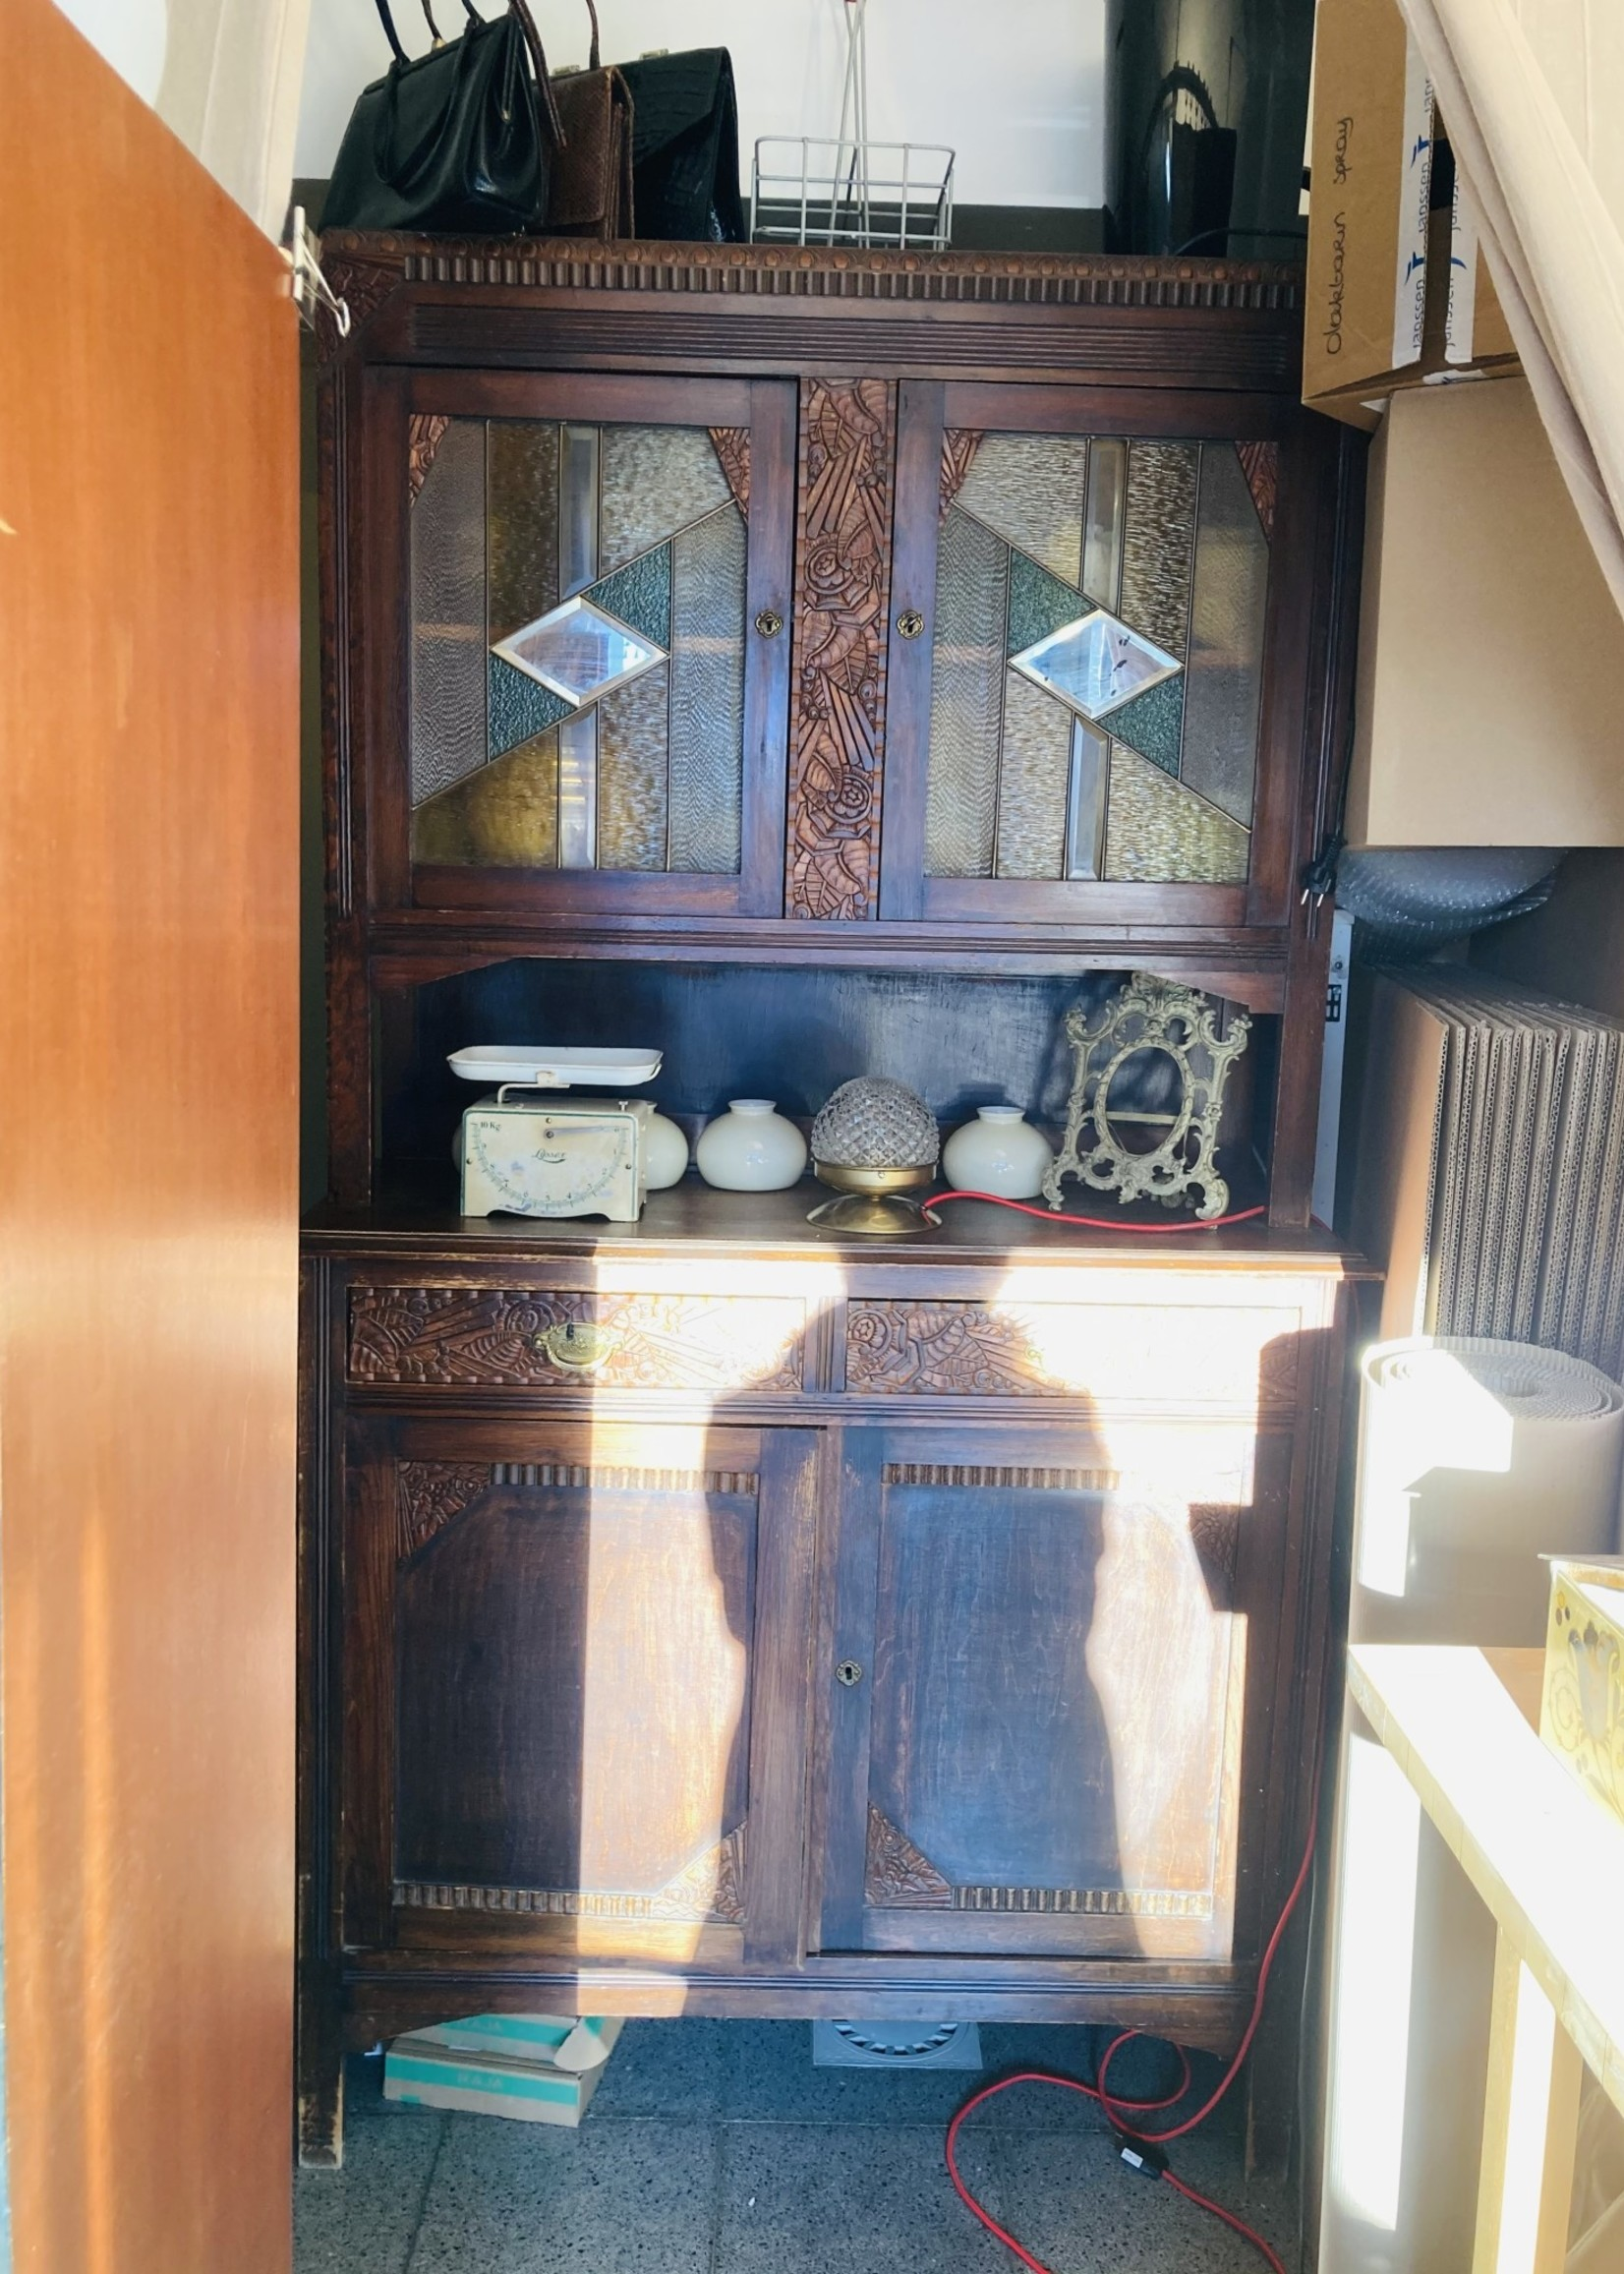 Highboard/kitchen cabinet with carved woodwork and green glass in lead doors